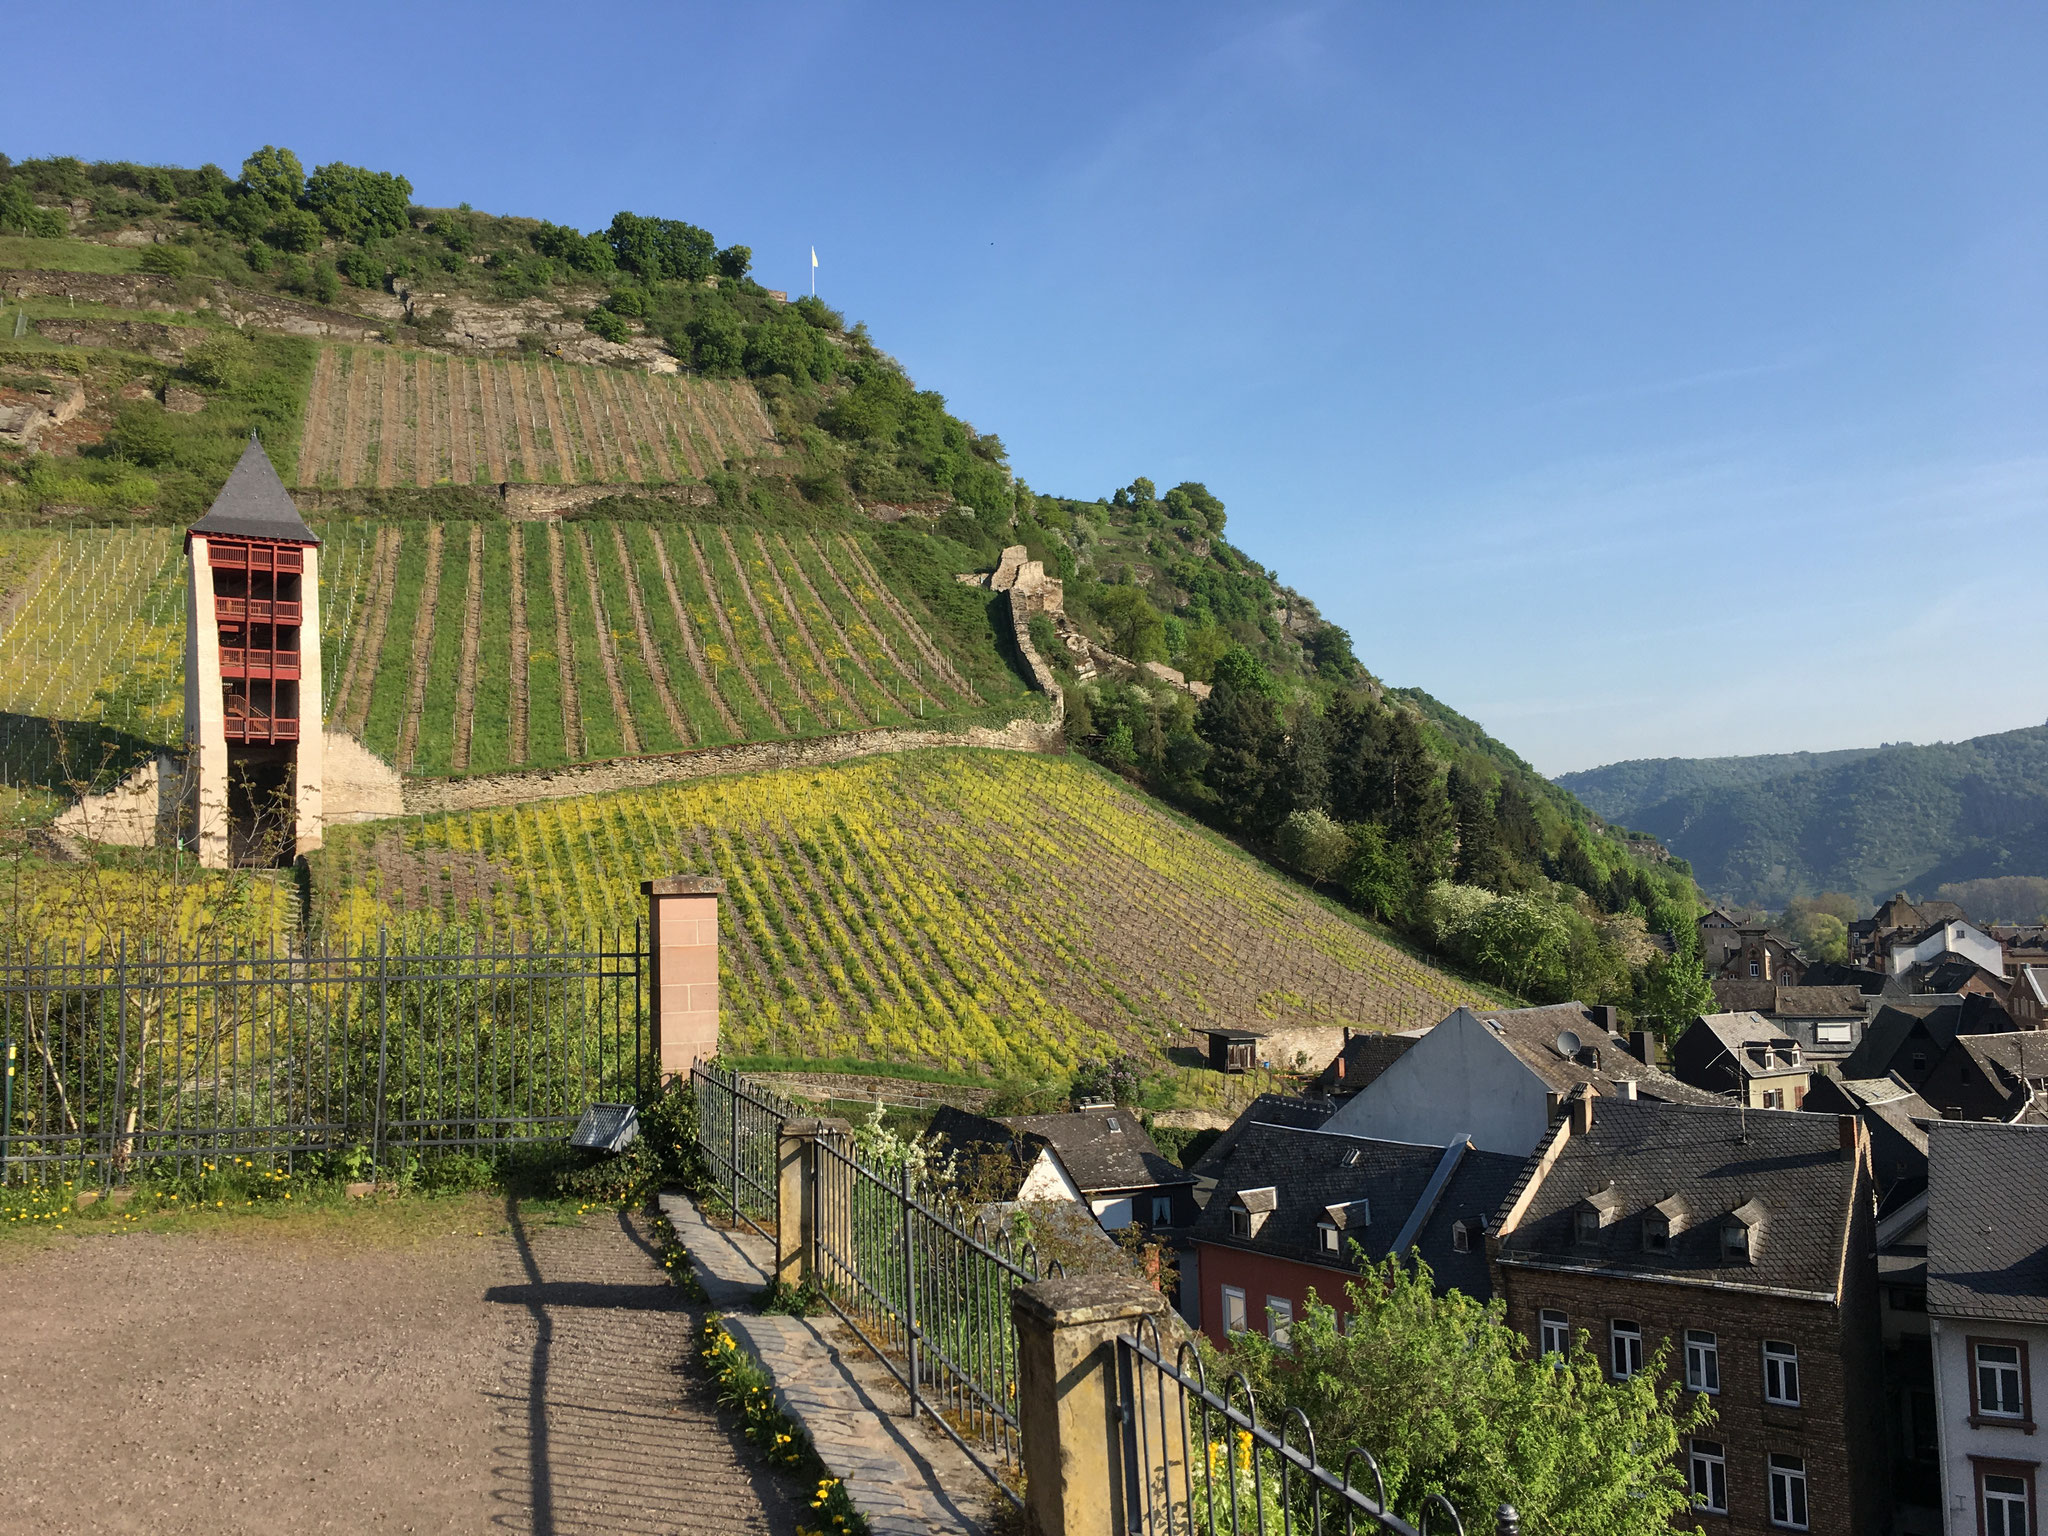 Famous vineyard sites in Bacharach